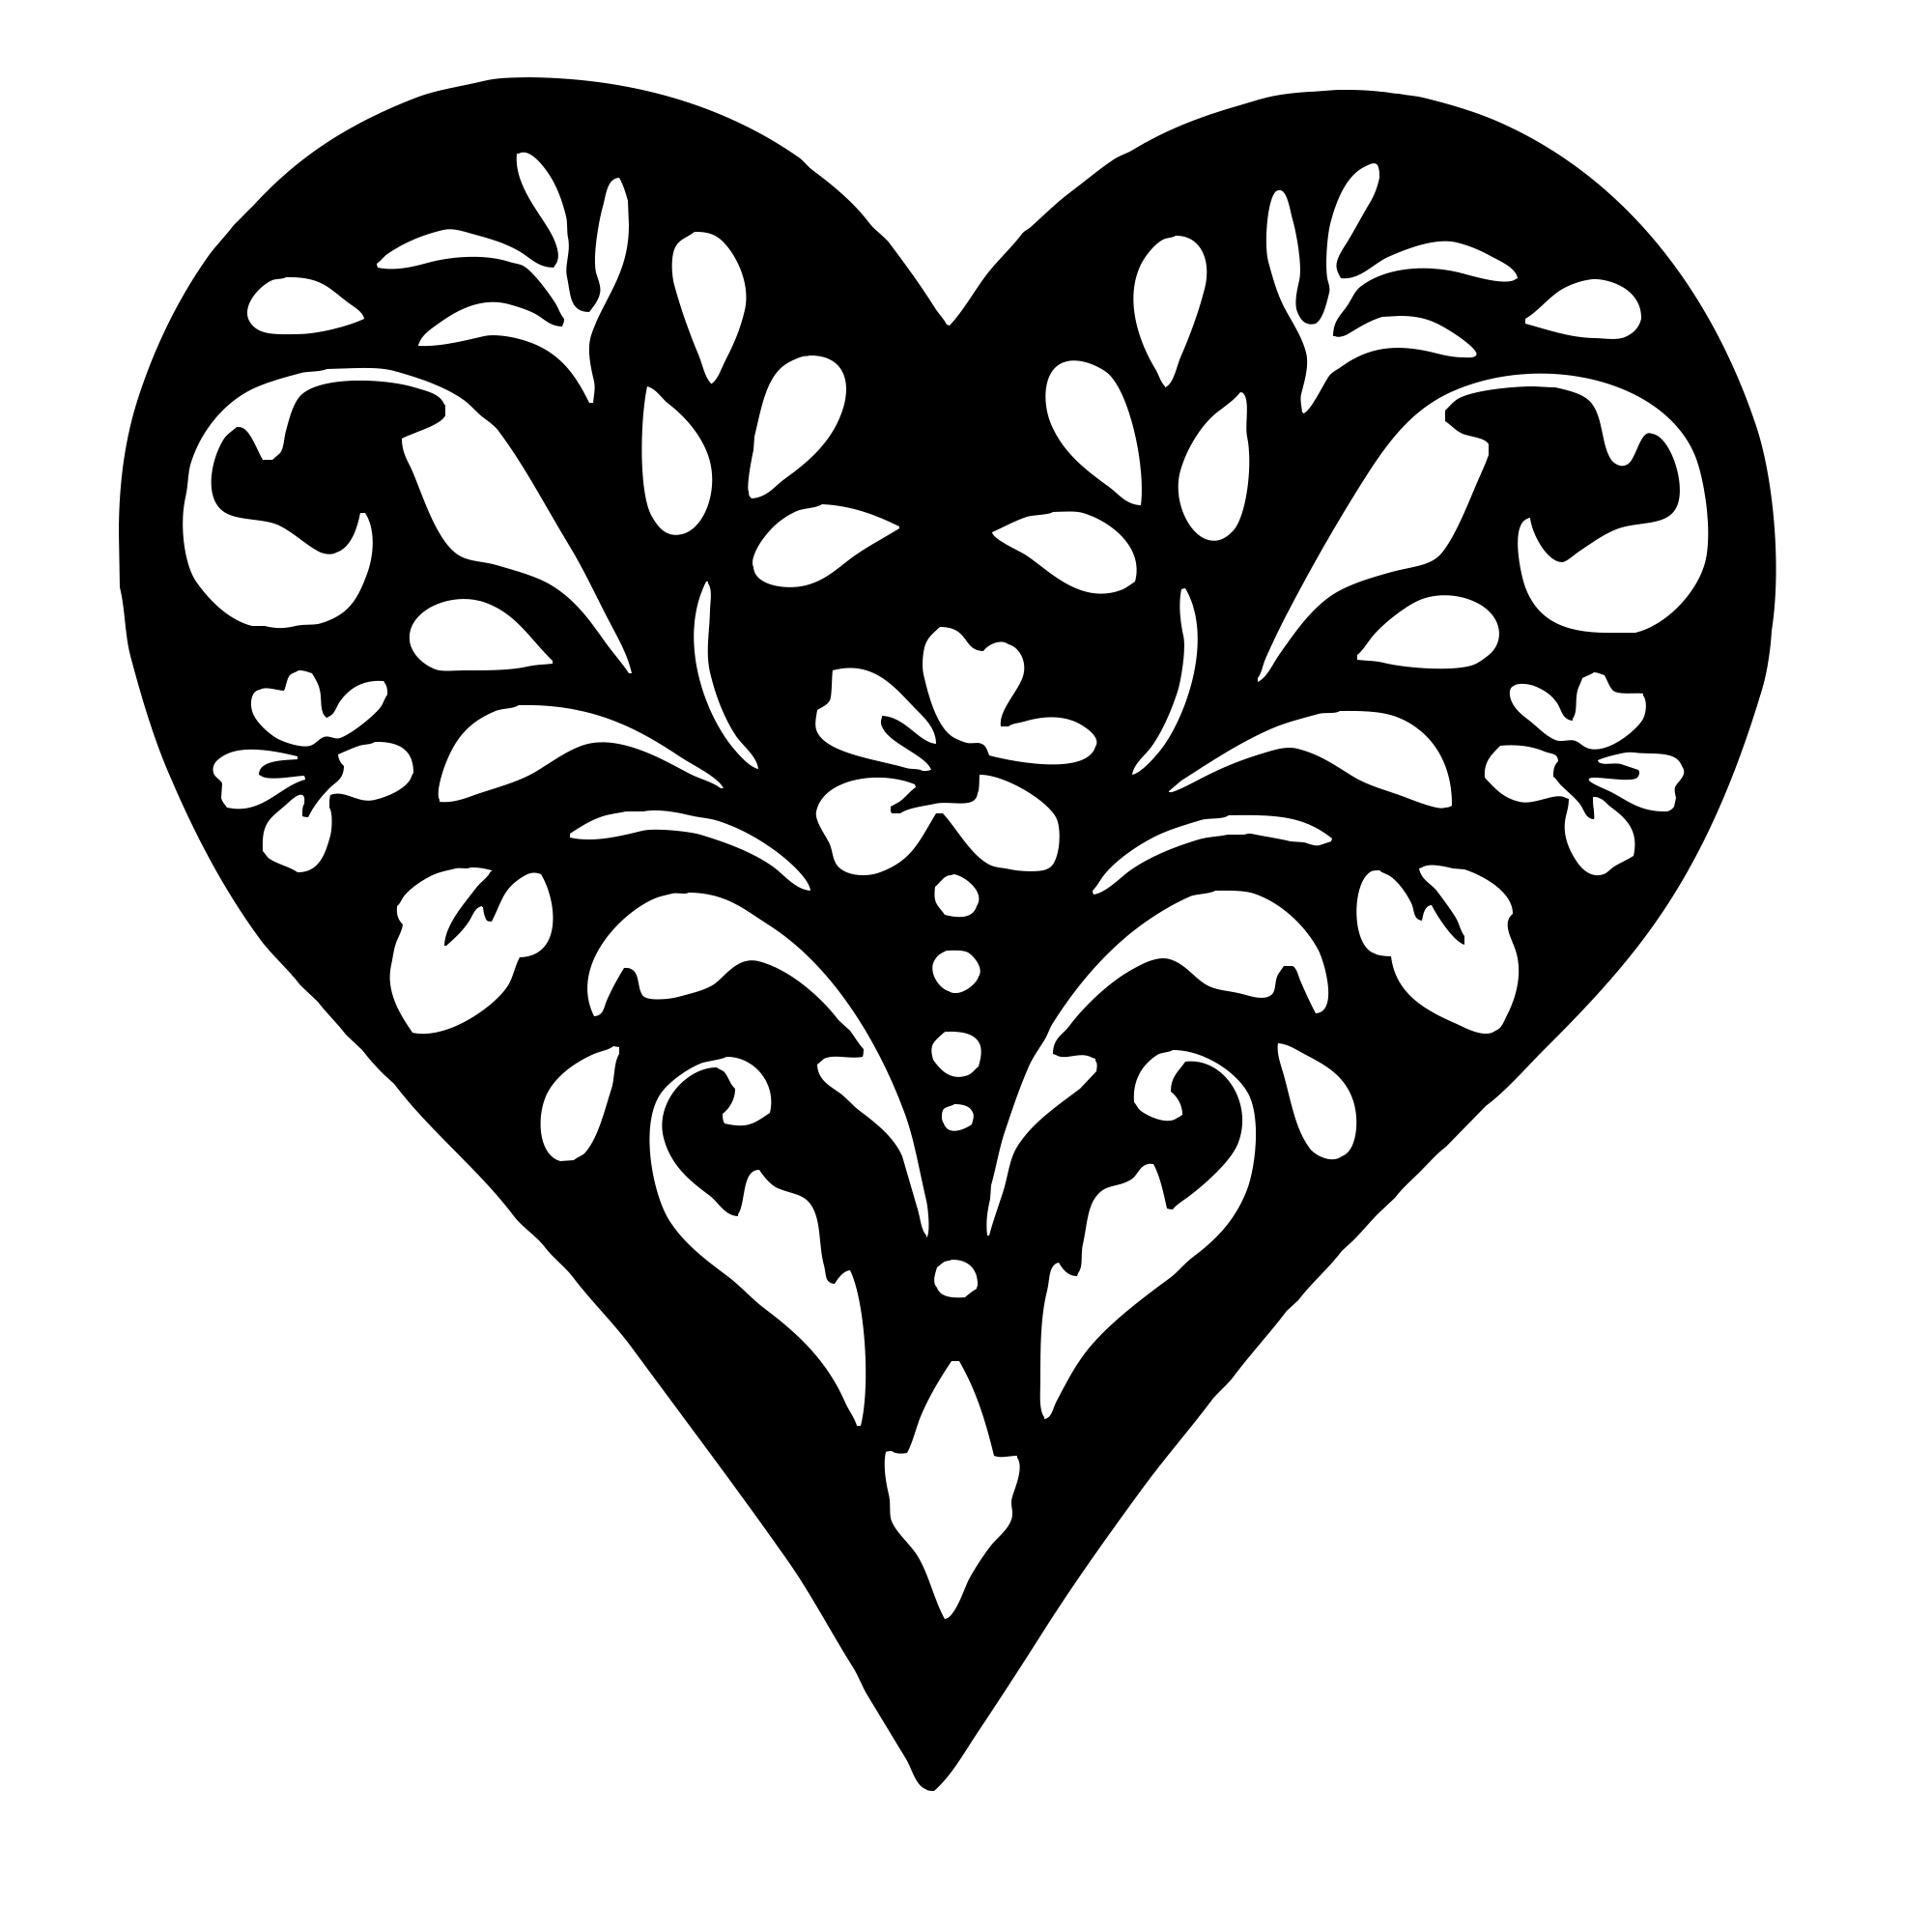 heart printable free printable heart coloring pages for kids printable heart